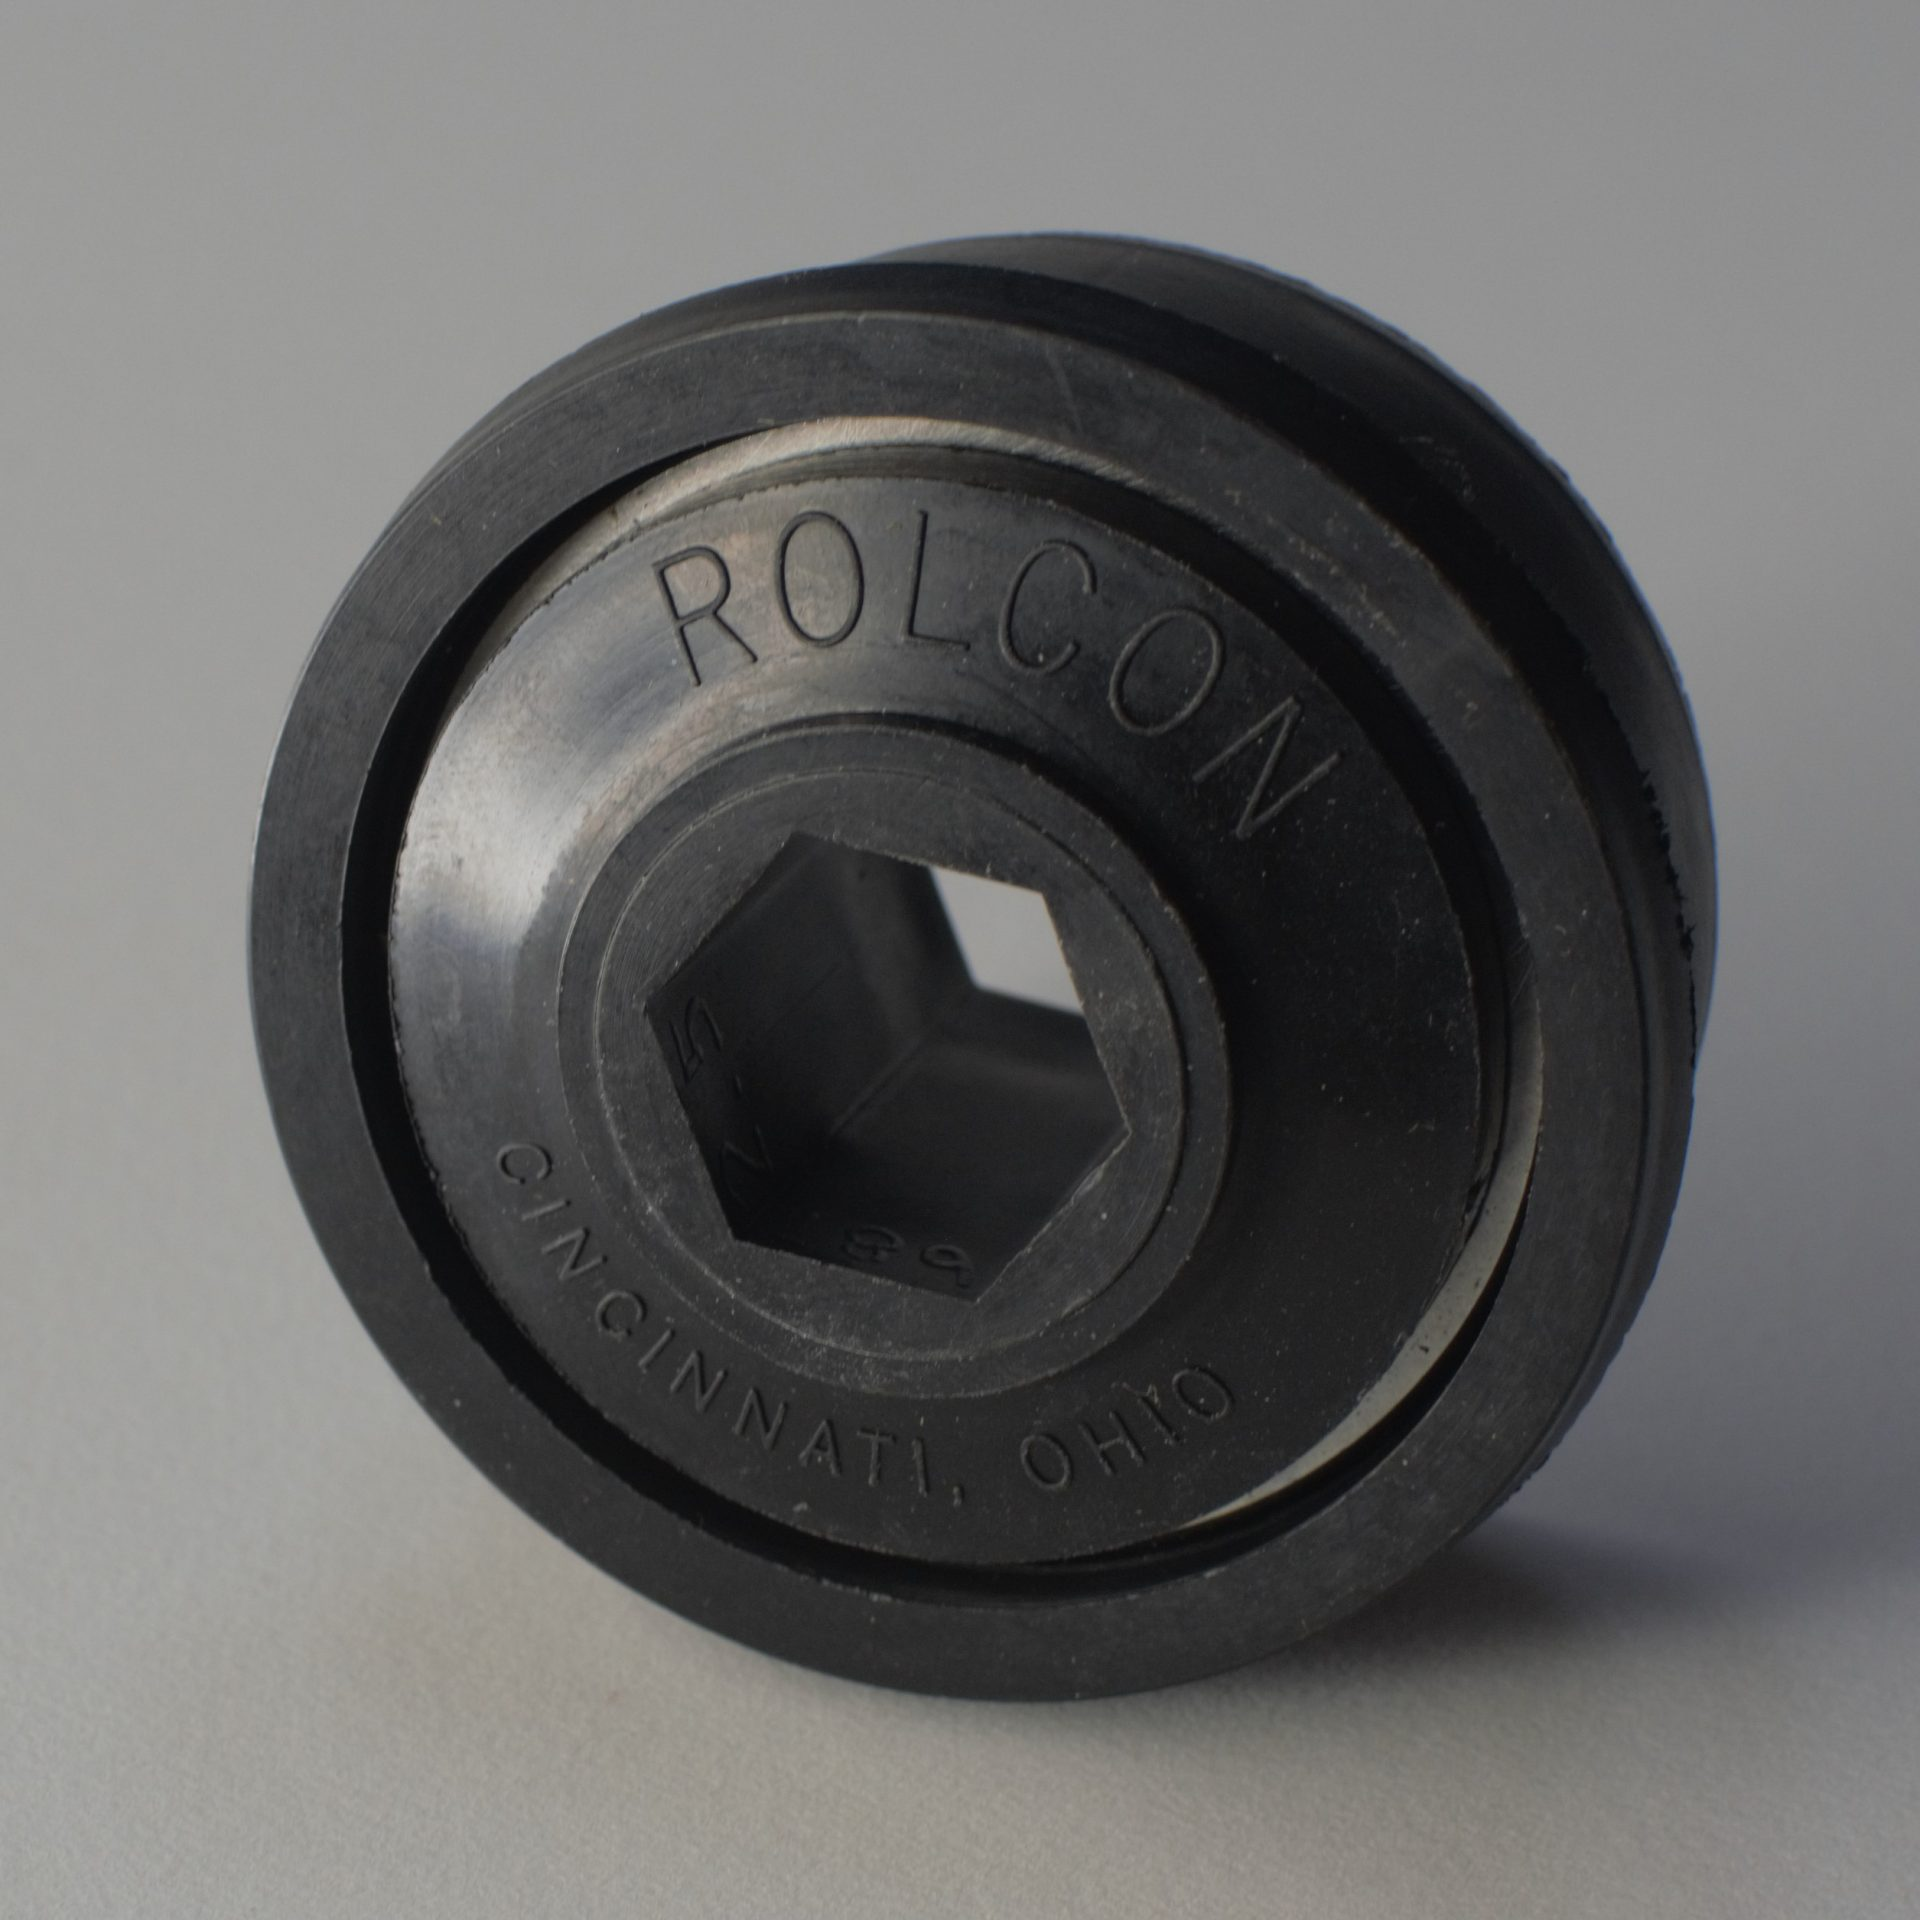 a 2.5 Rolcon roller bearing assembly